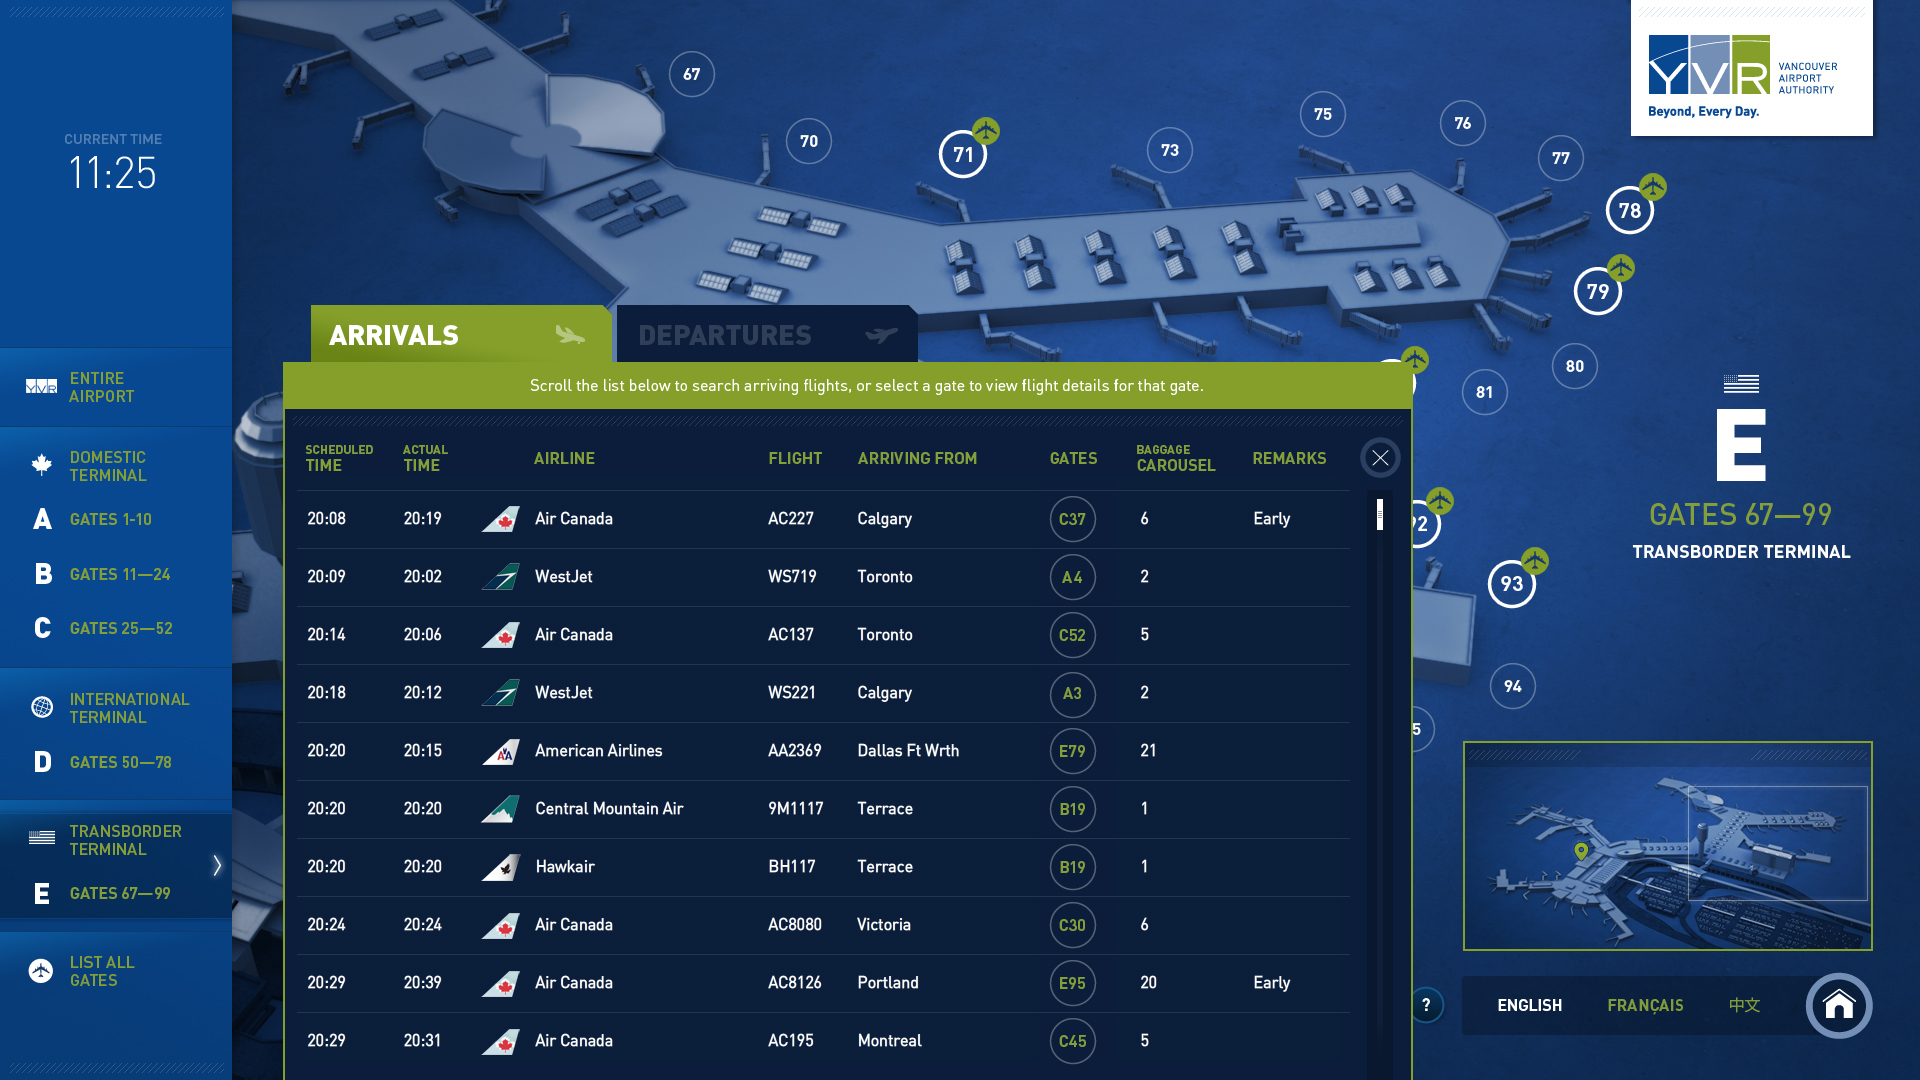 The arrivals and departures tabs expand to show a list of current flights.